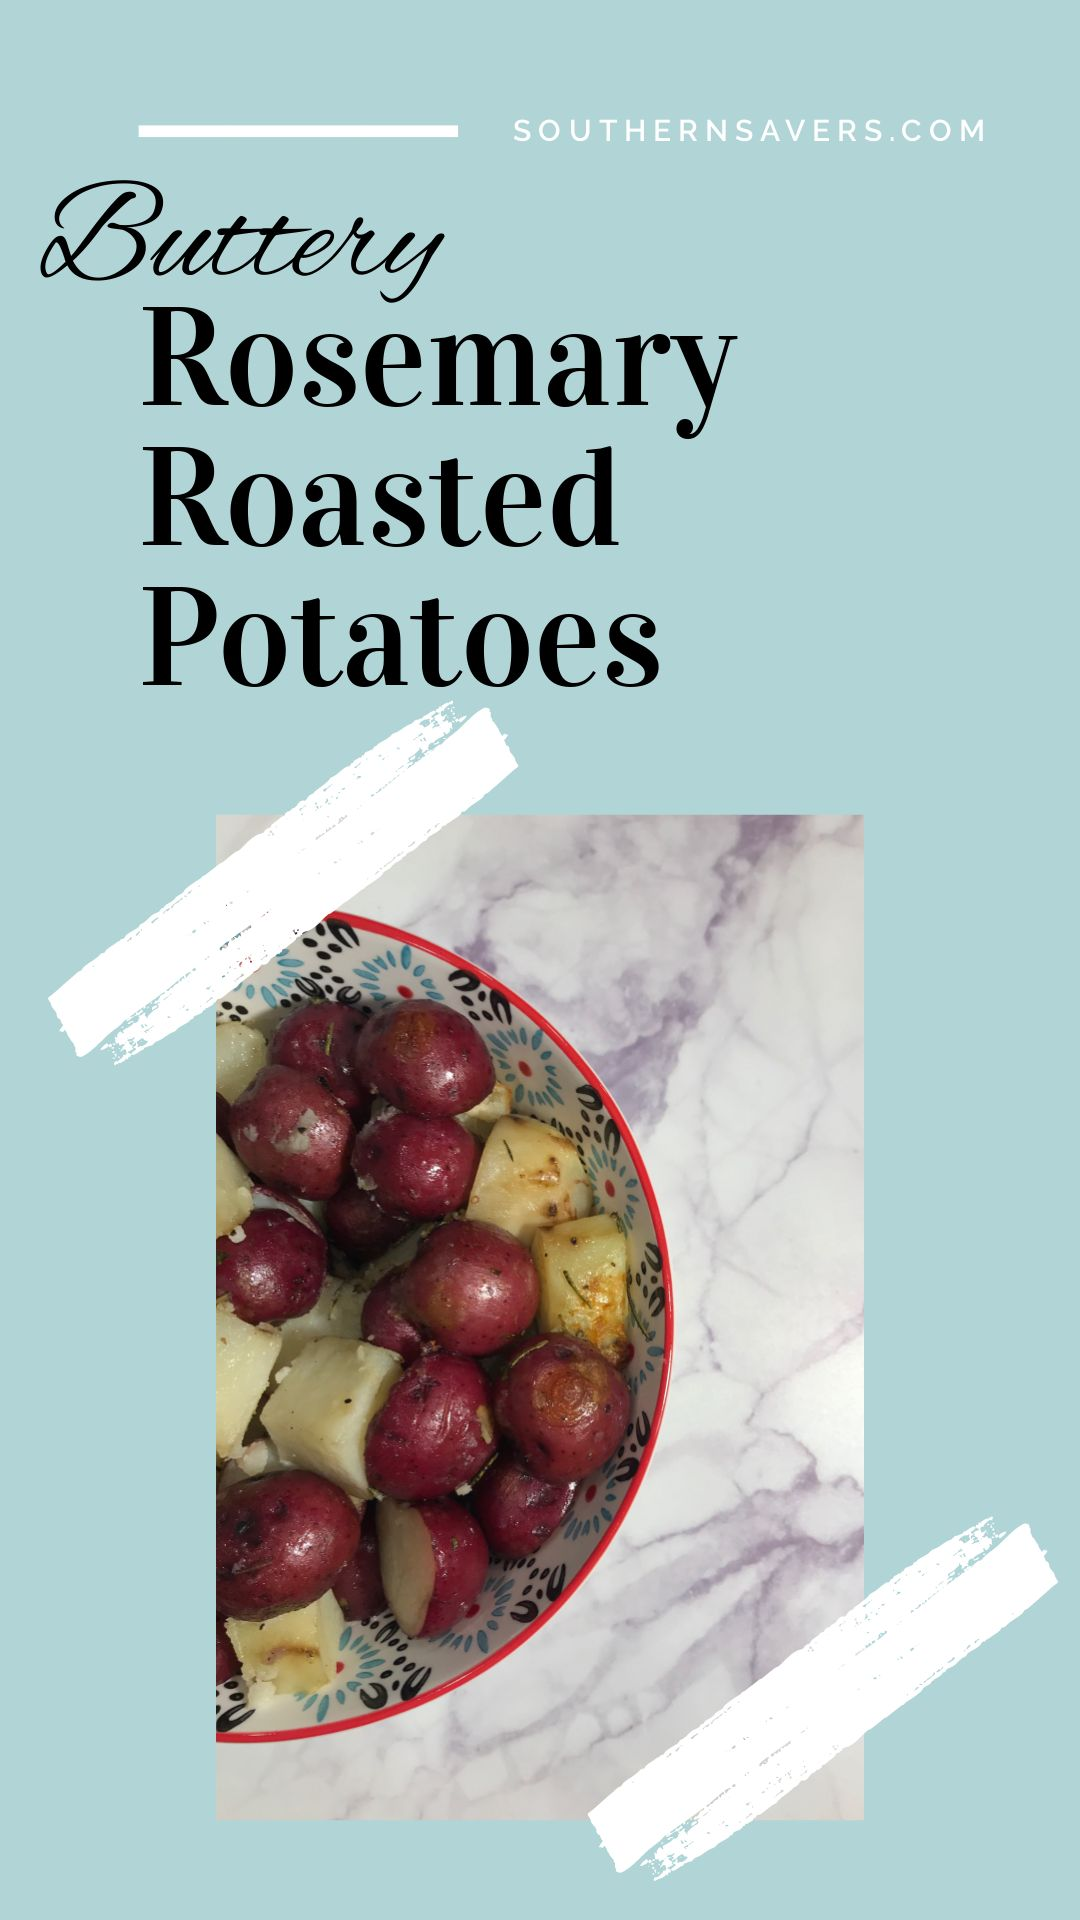 Our favorite way to roast veggies, this Buttery Rosemary Roasted Potatoes recipe will make you want it with every meal!  Plus grab a new $1.50 off coupon to grab Brummel & Brown Spread super cheap at Publix!  #sponsoredpost